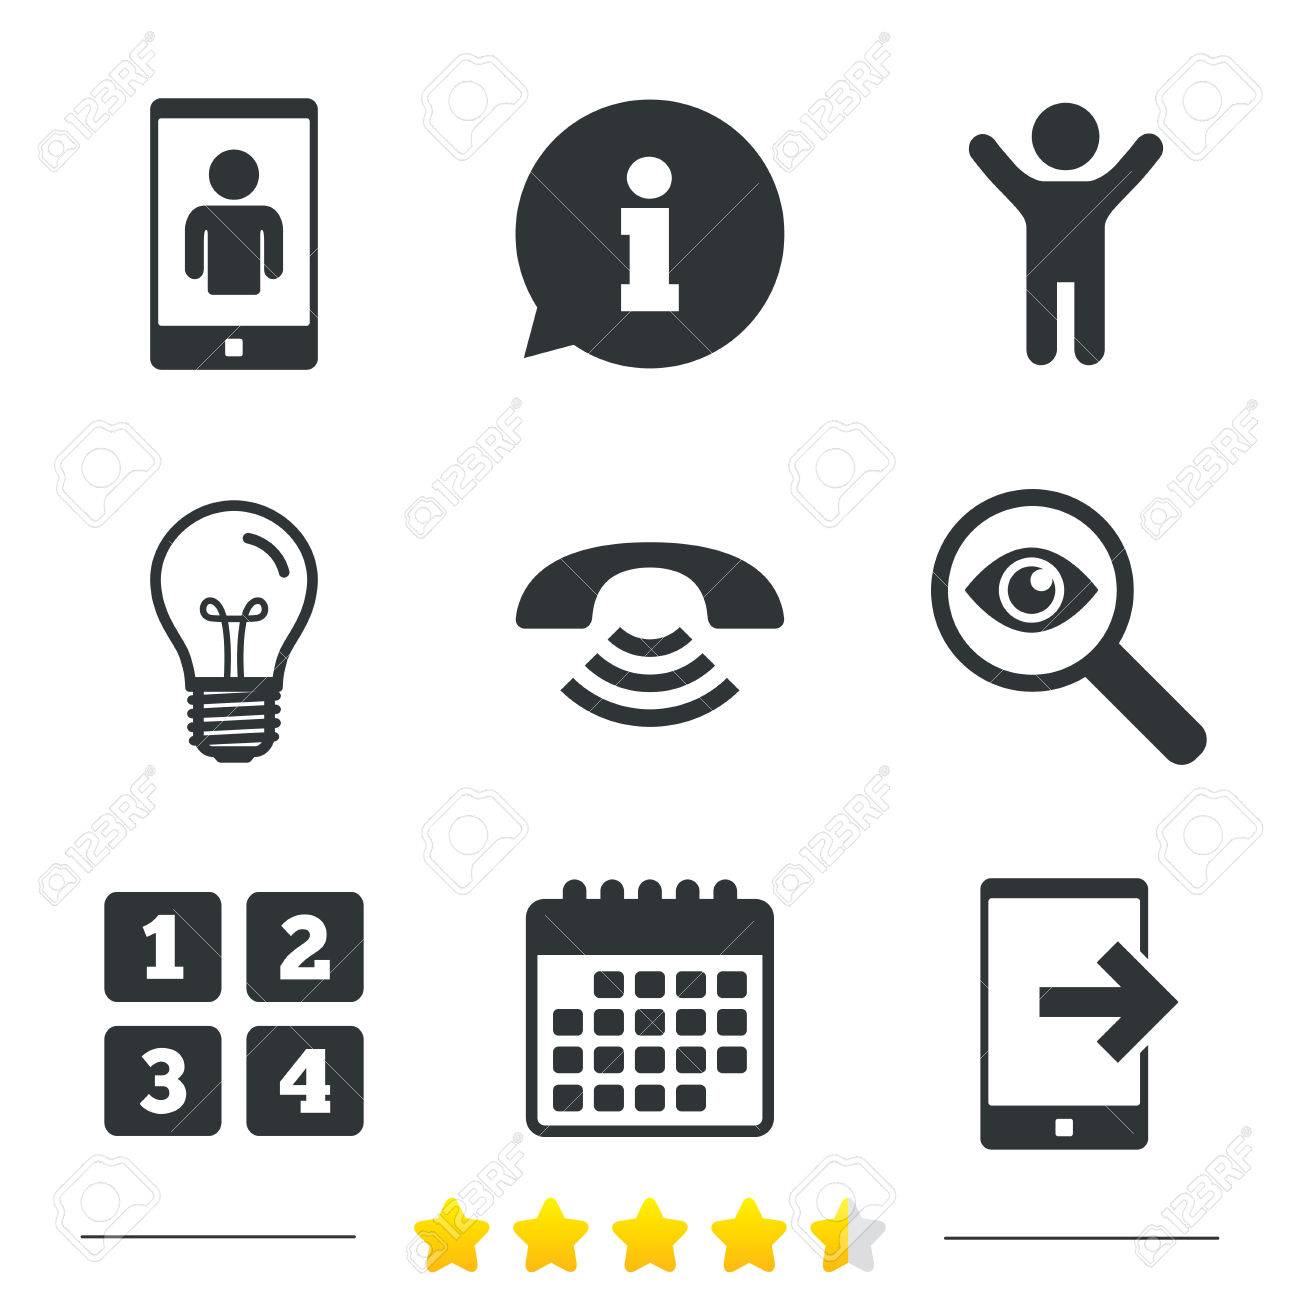 Phone icons smartphone video call sign call center support phone icons smartphone video call sign call center support symbol cellphone keyboard symbol biocorpaavc Images